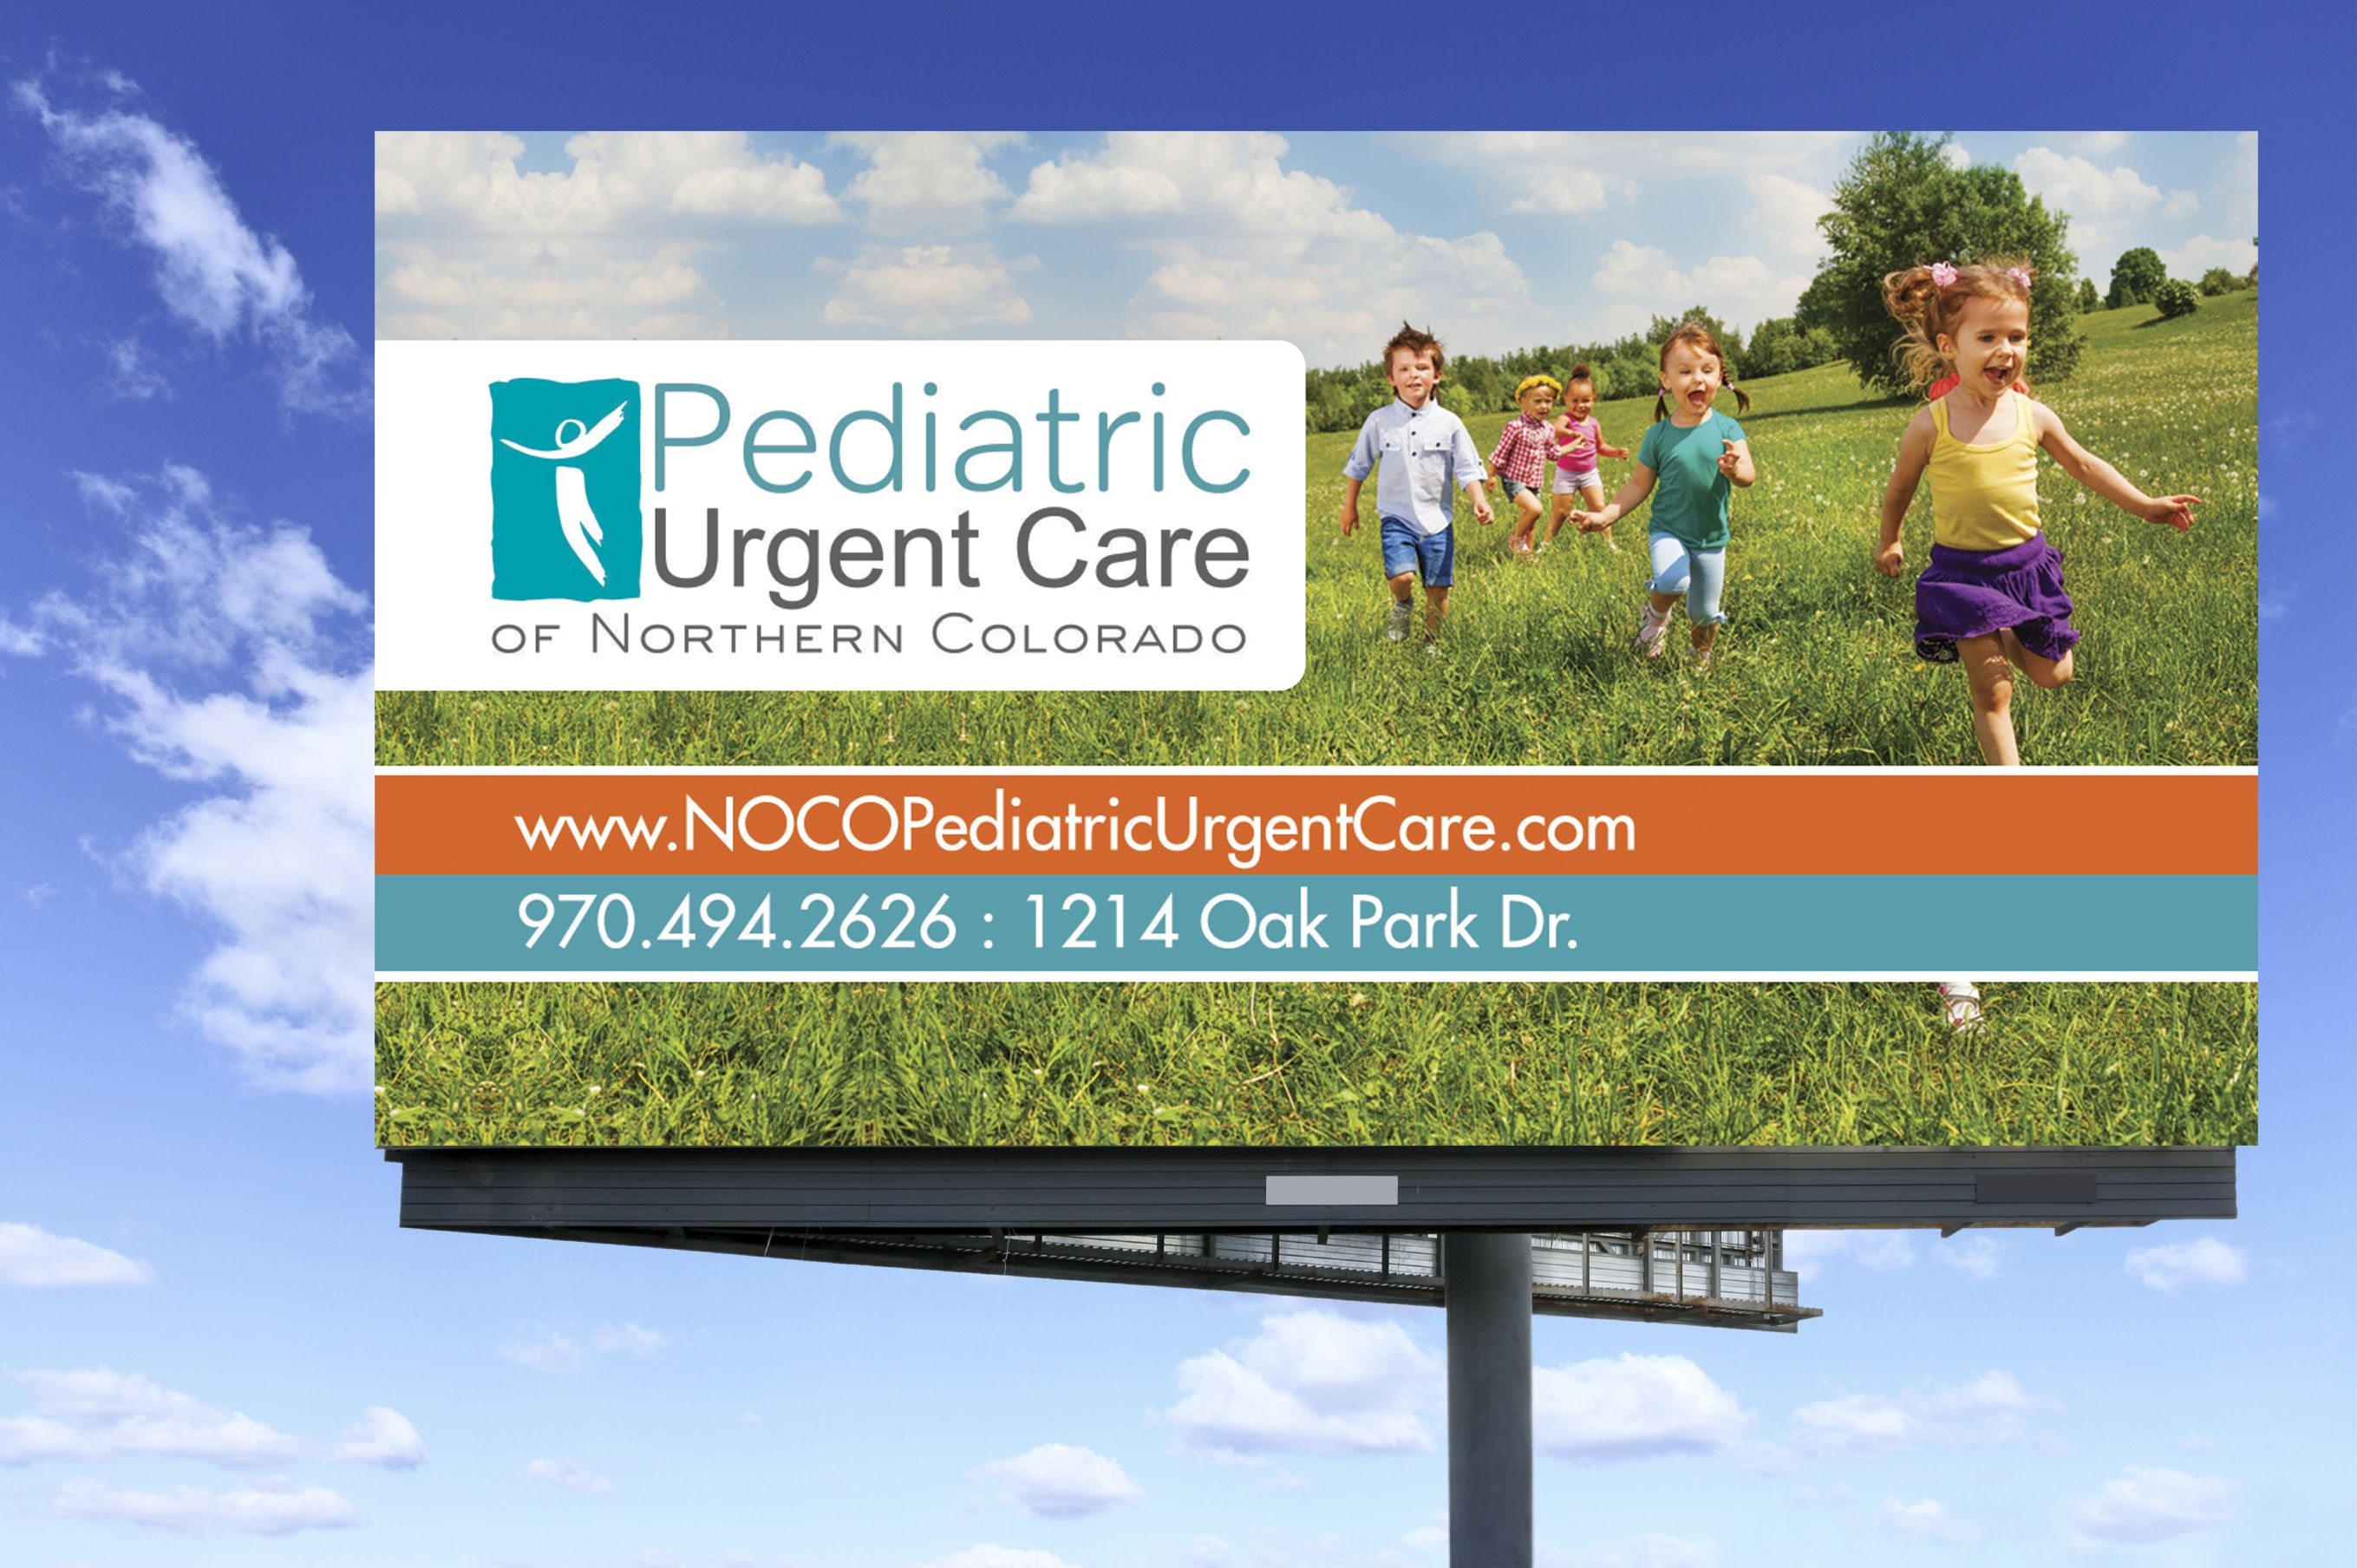 Pediatric Urgent Care Billboard, Billboard Design | Billboards